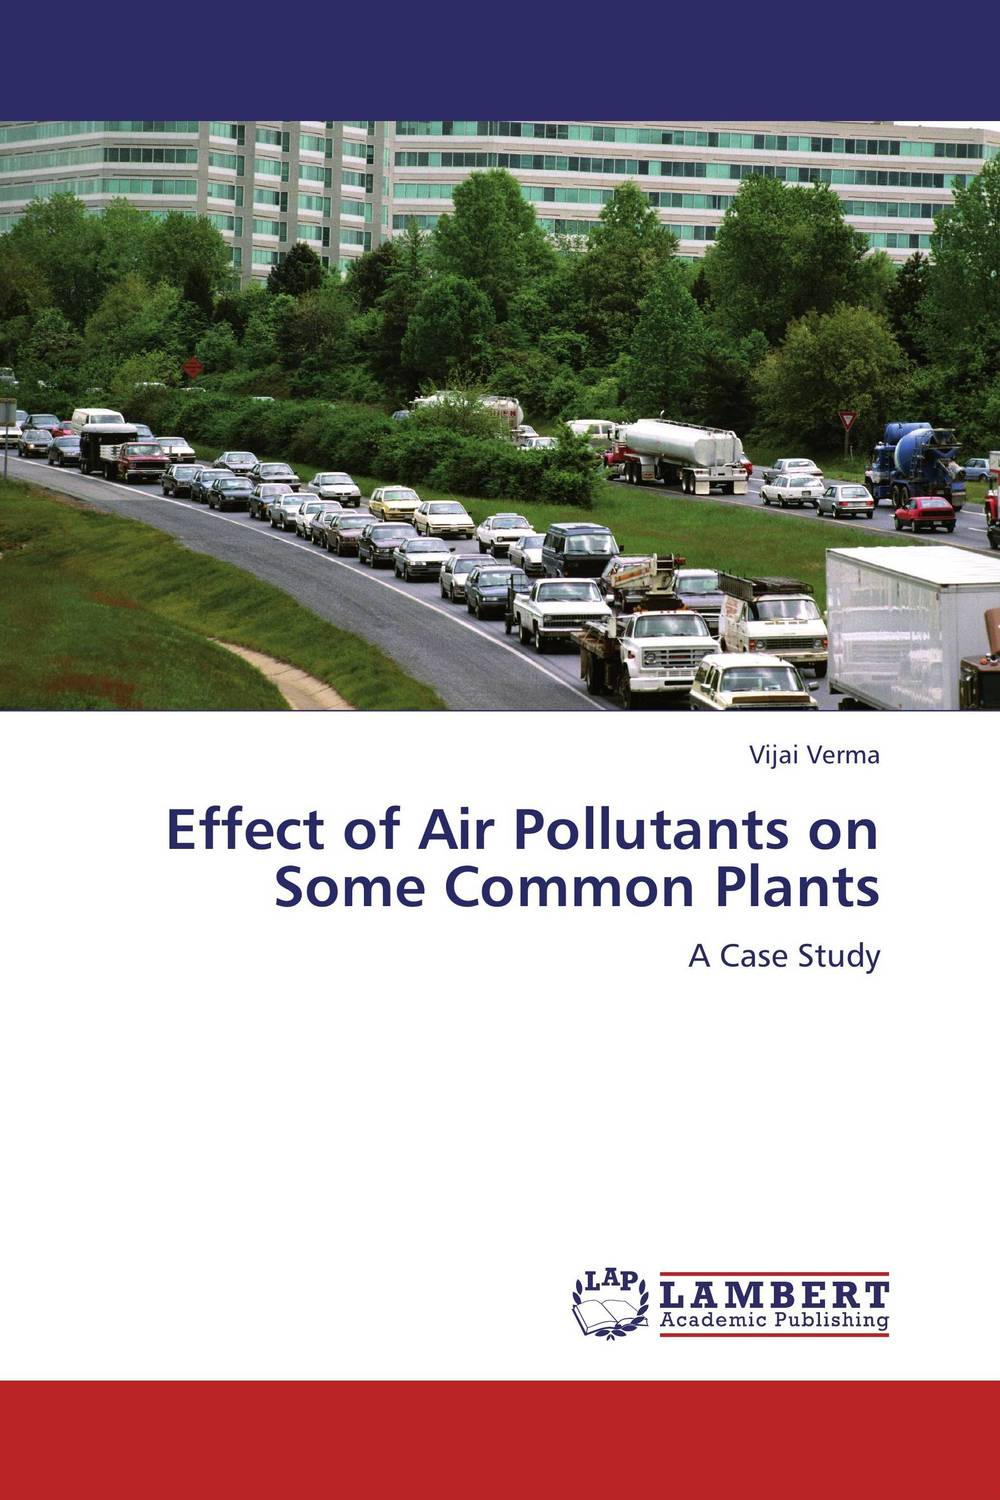 Effect of Air Pollutants on Some Common Plants effect of air pollutants on some common plants